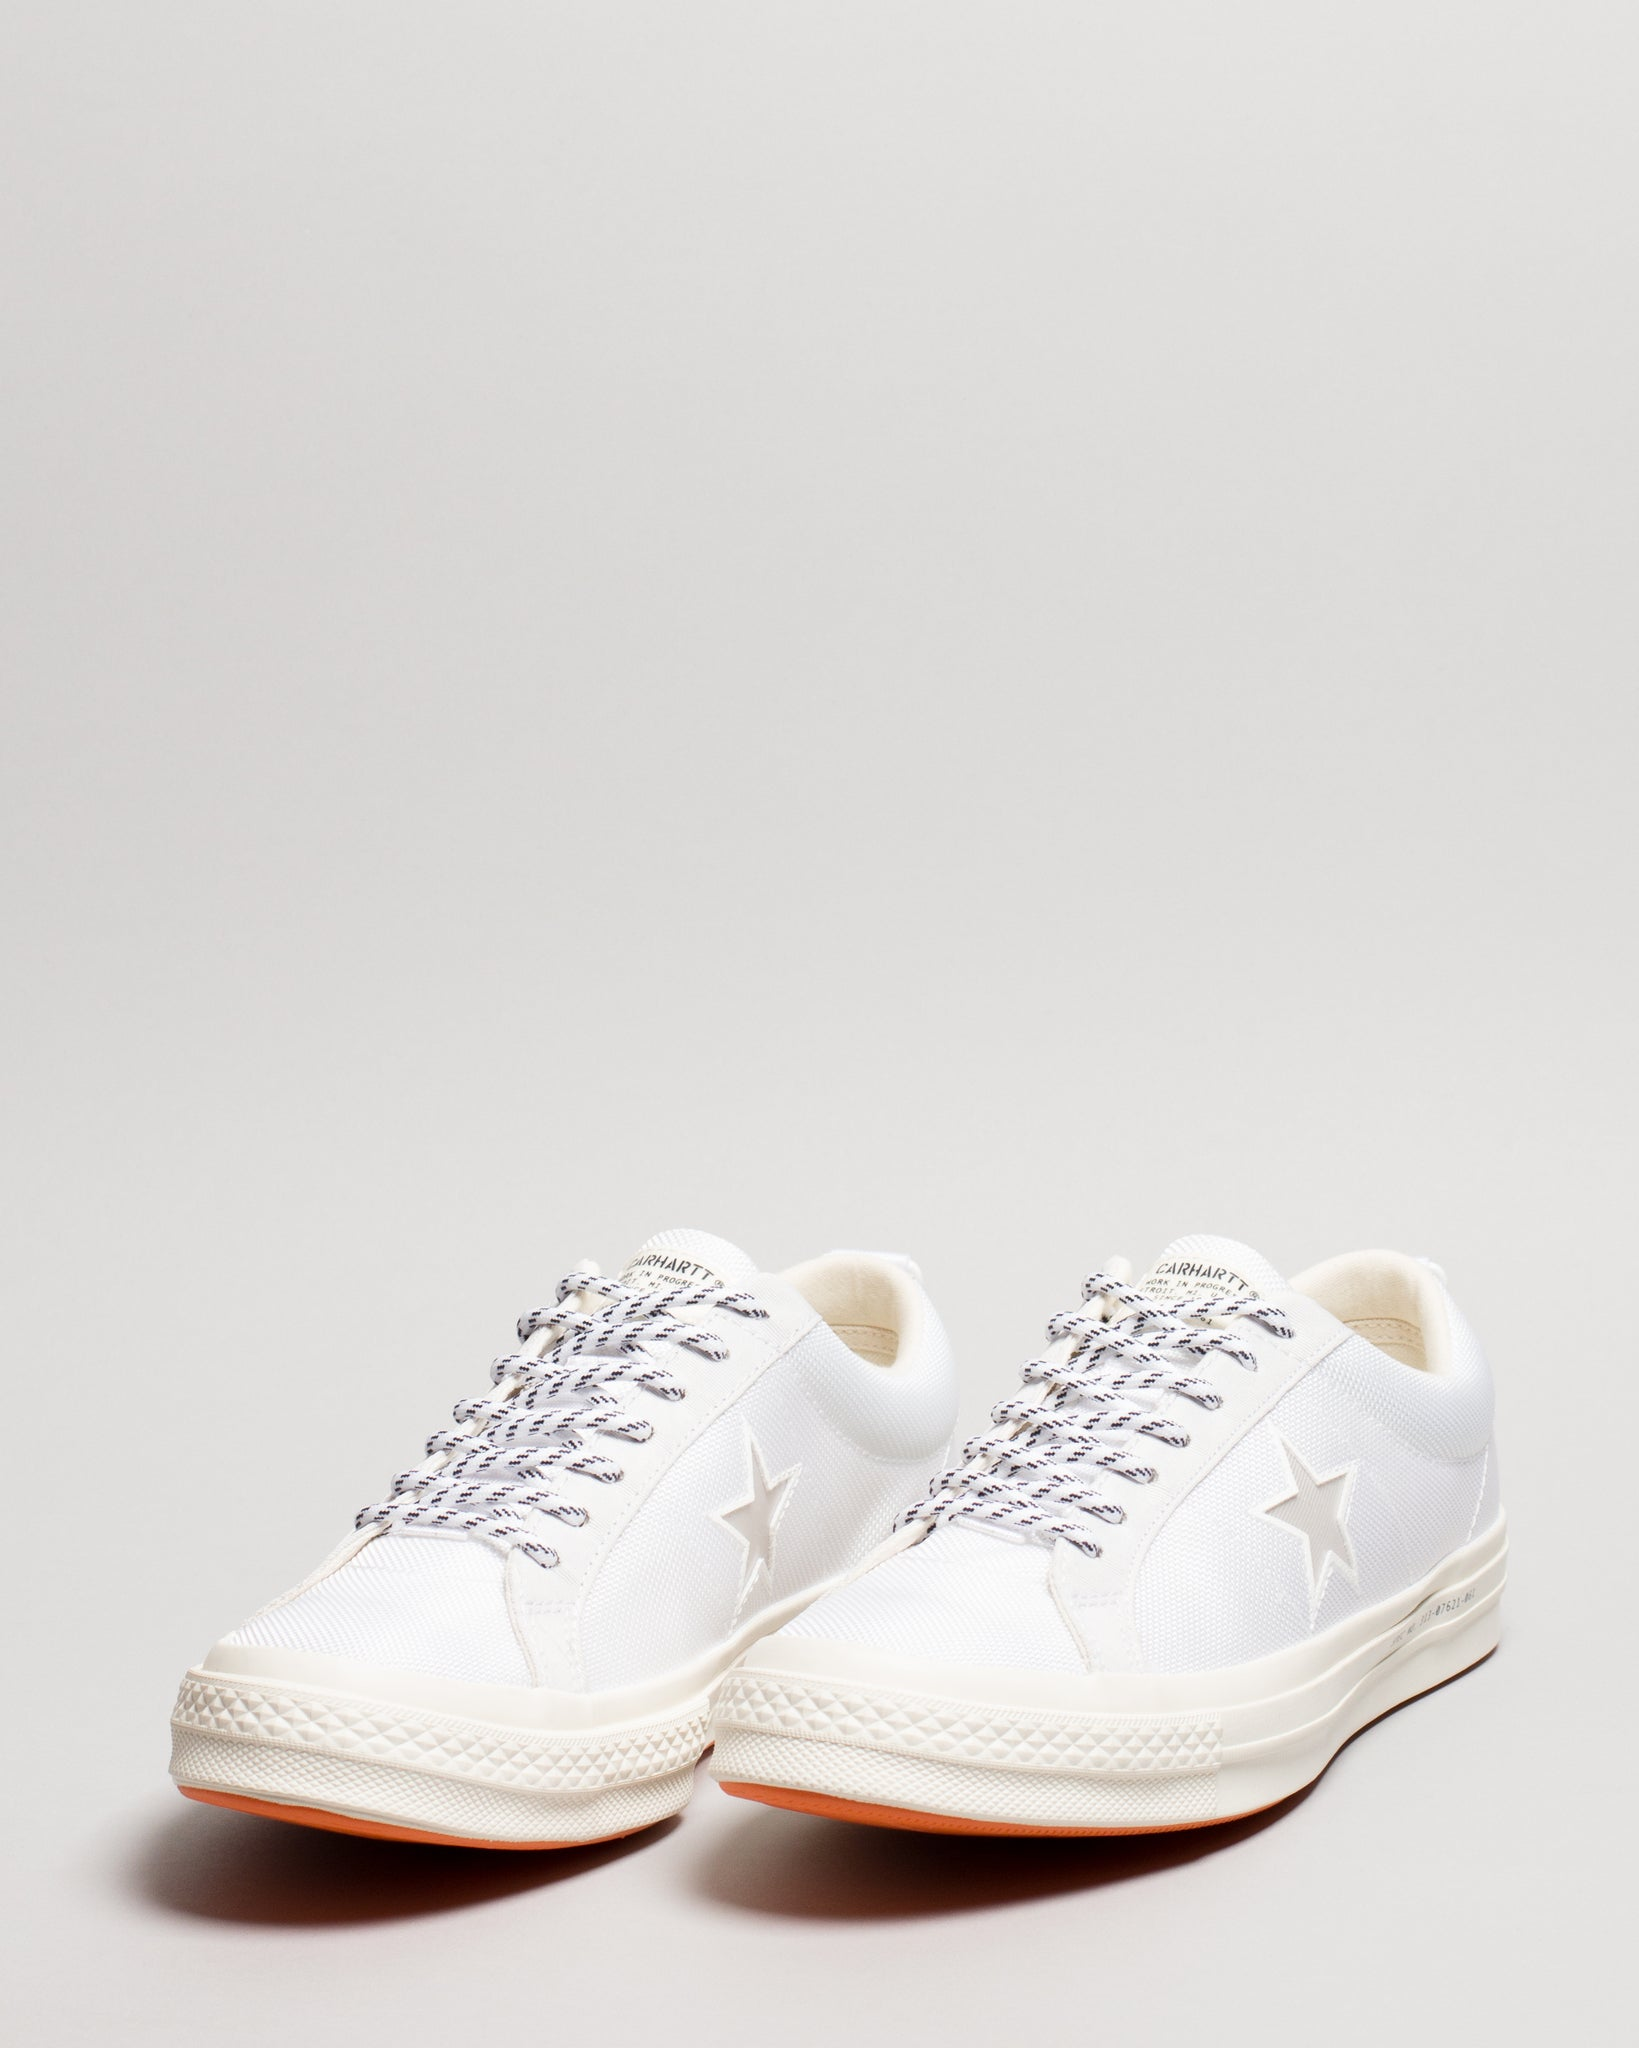 Carhartt WIP One Star White